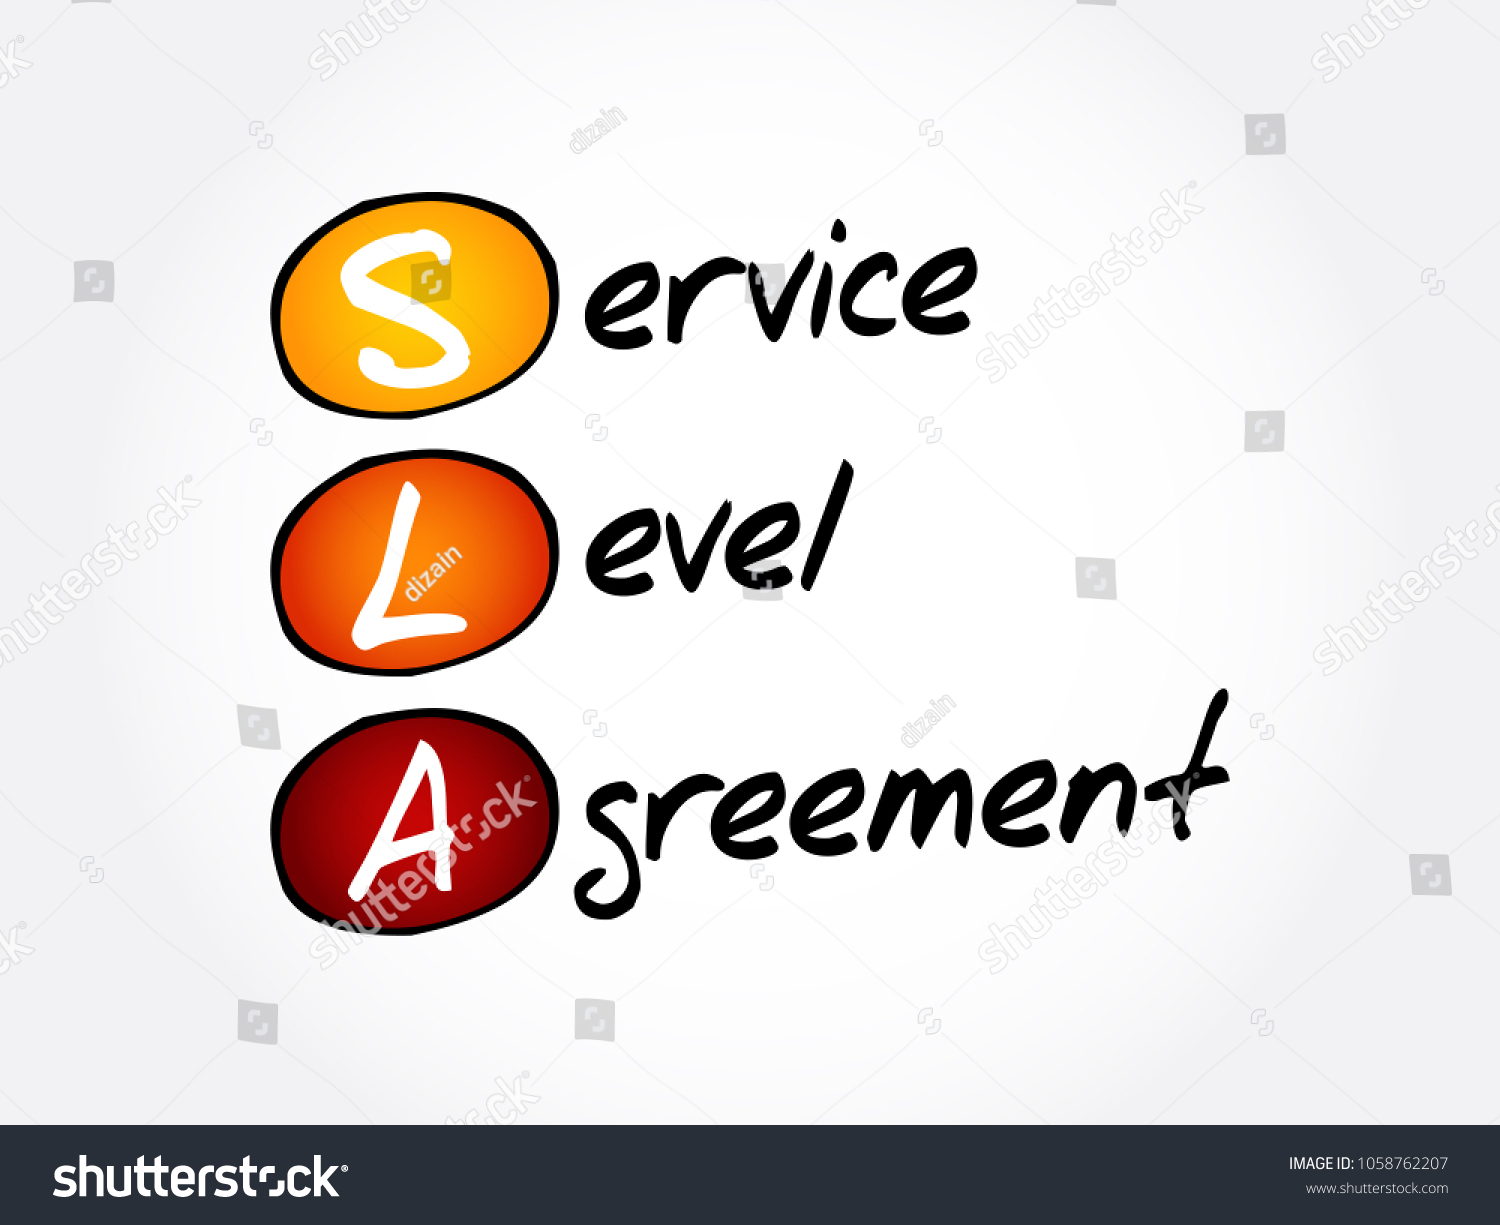 SLA   Service Level Agreement Acronym, Business Concept Background